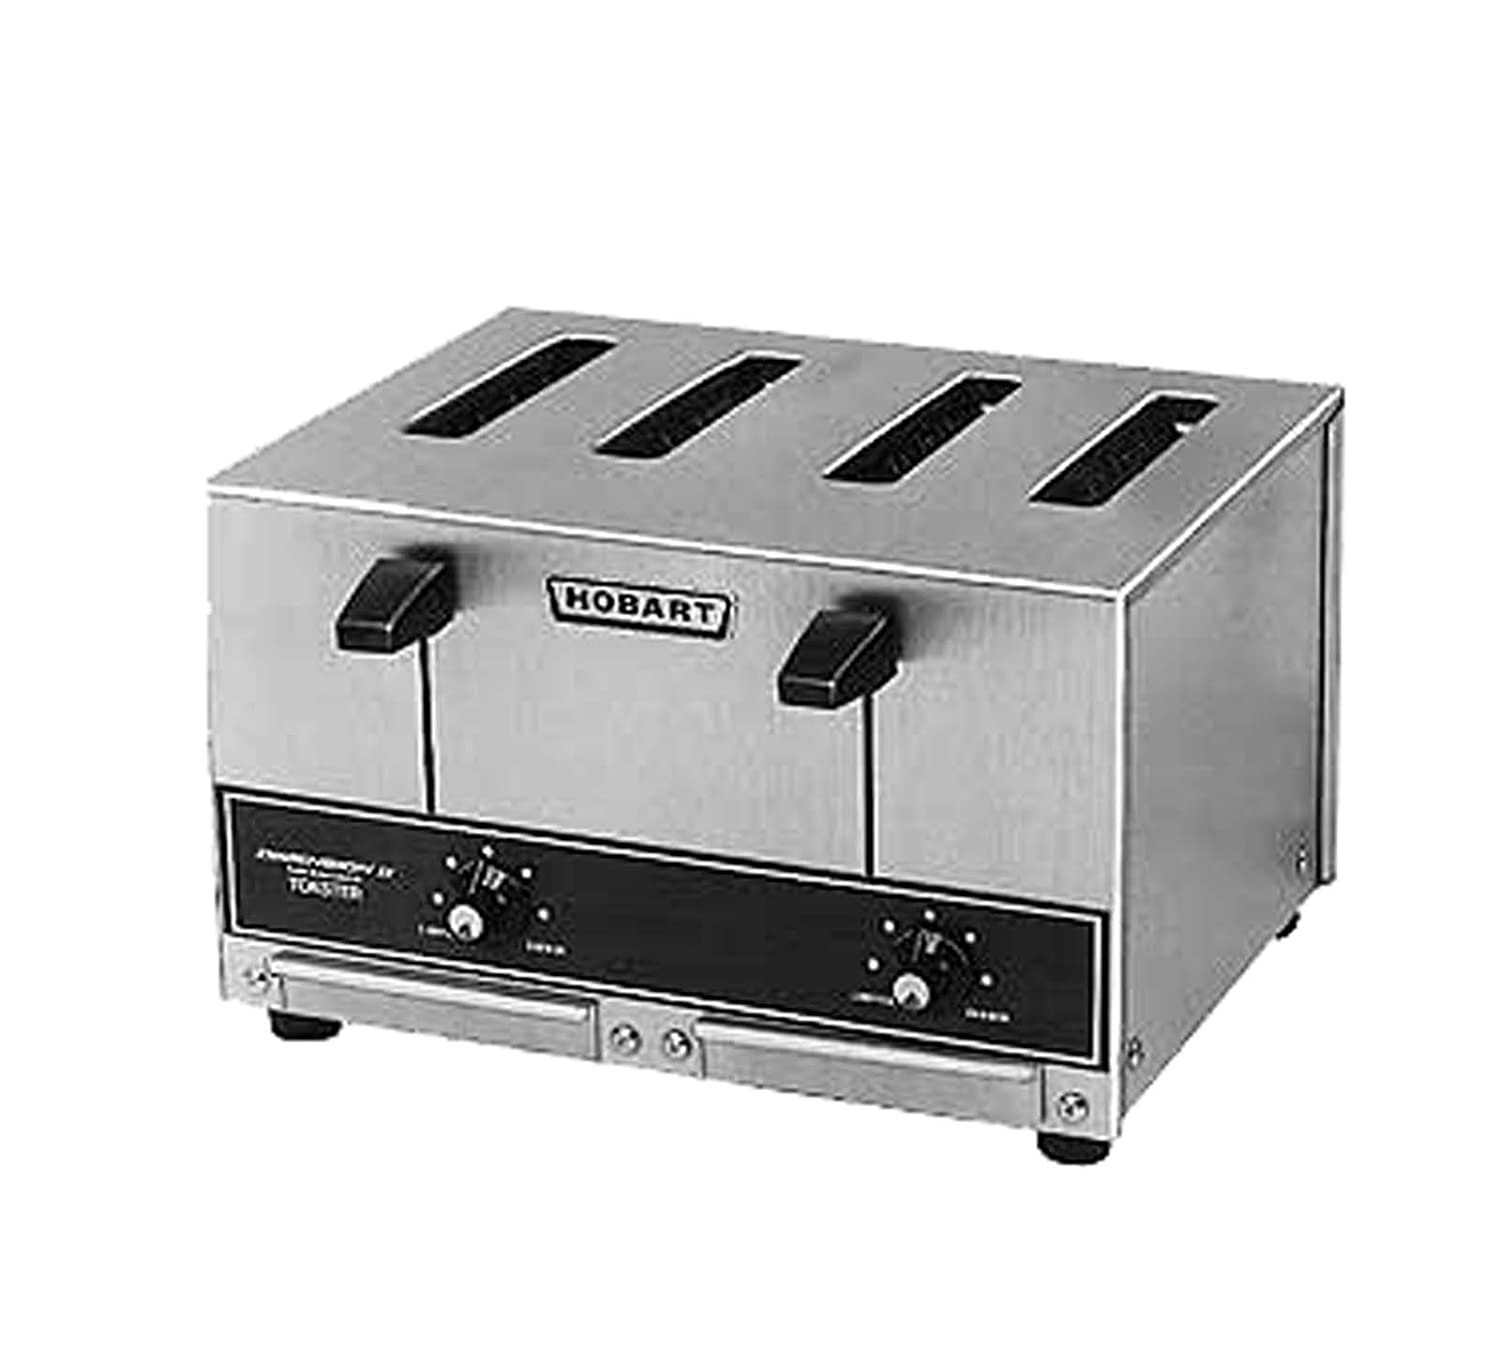 Hobart Et27 6 Four Slice Pop Up Toaster Industrial Three Phase Wiring Diagram Fryer Scientific